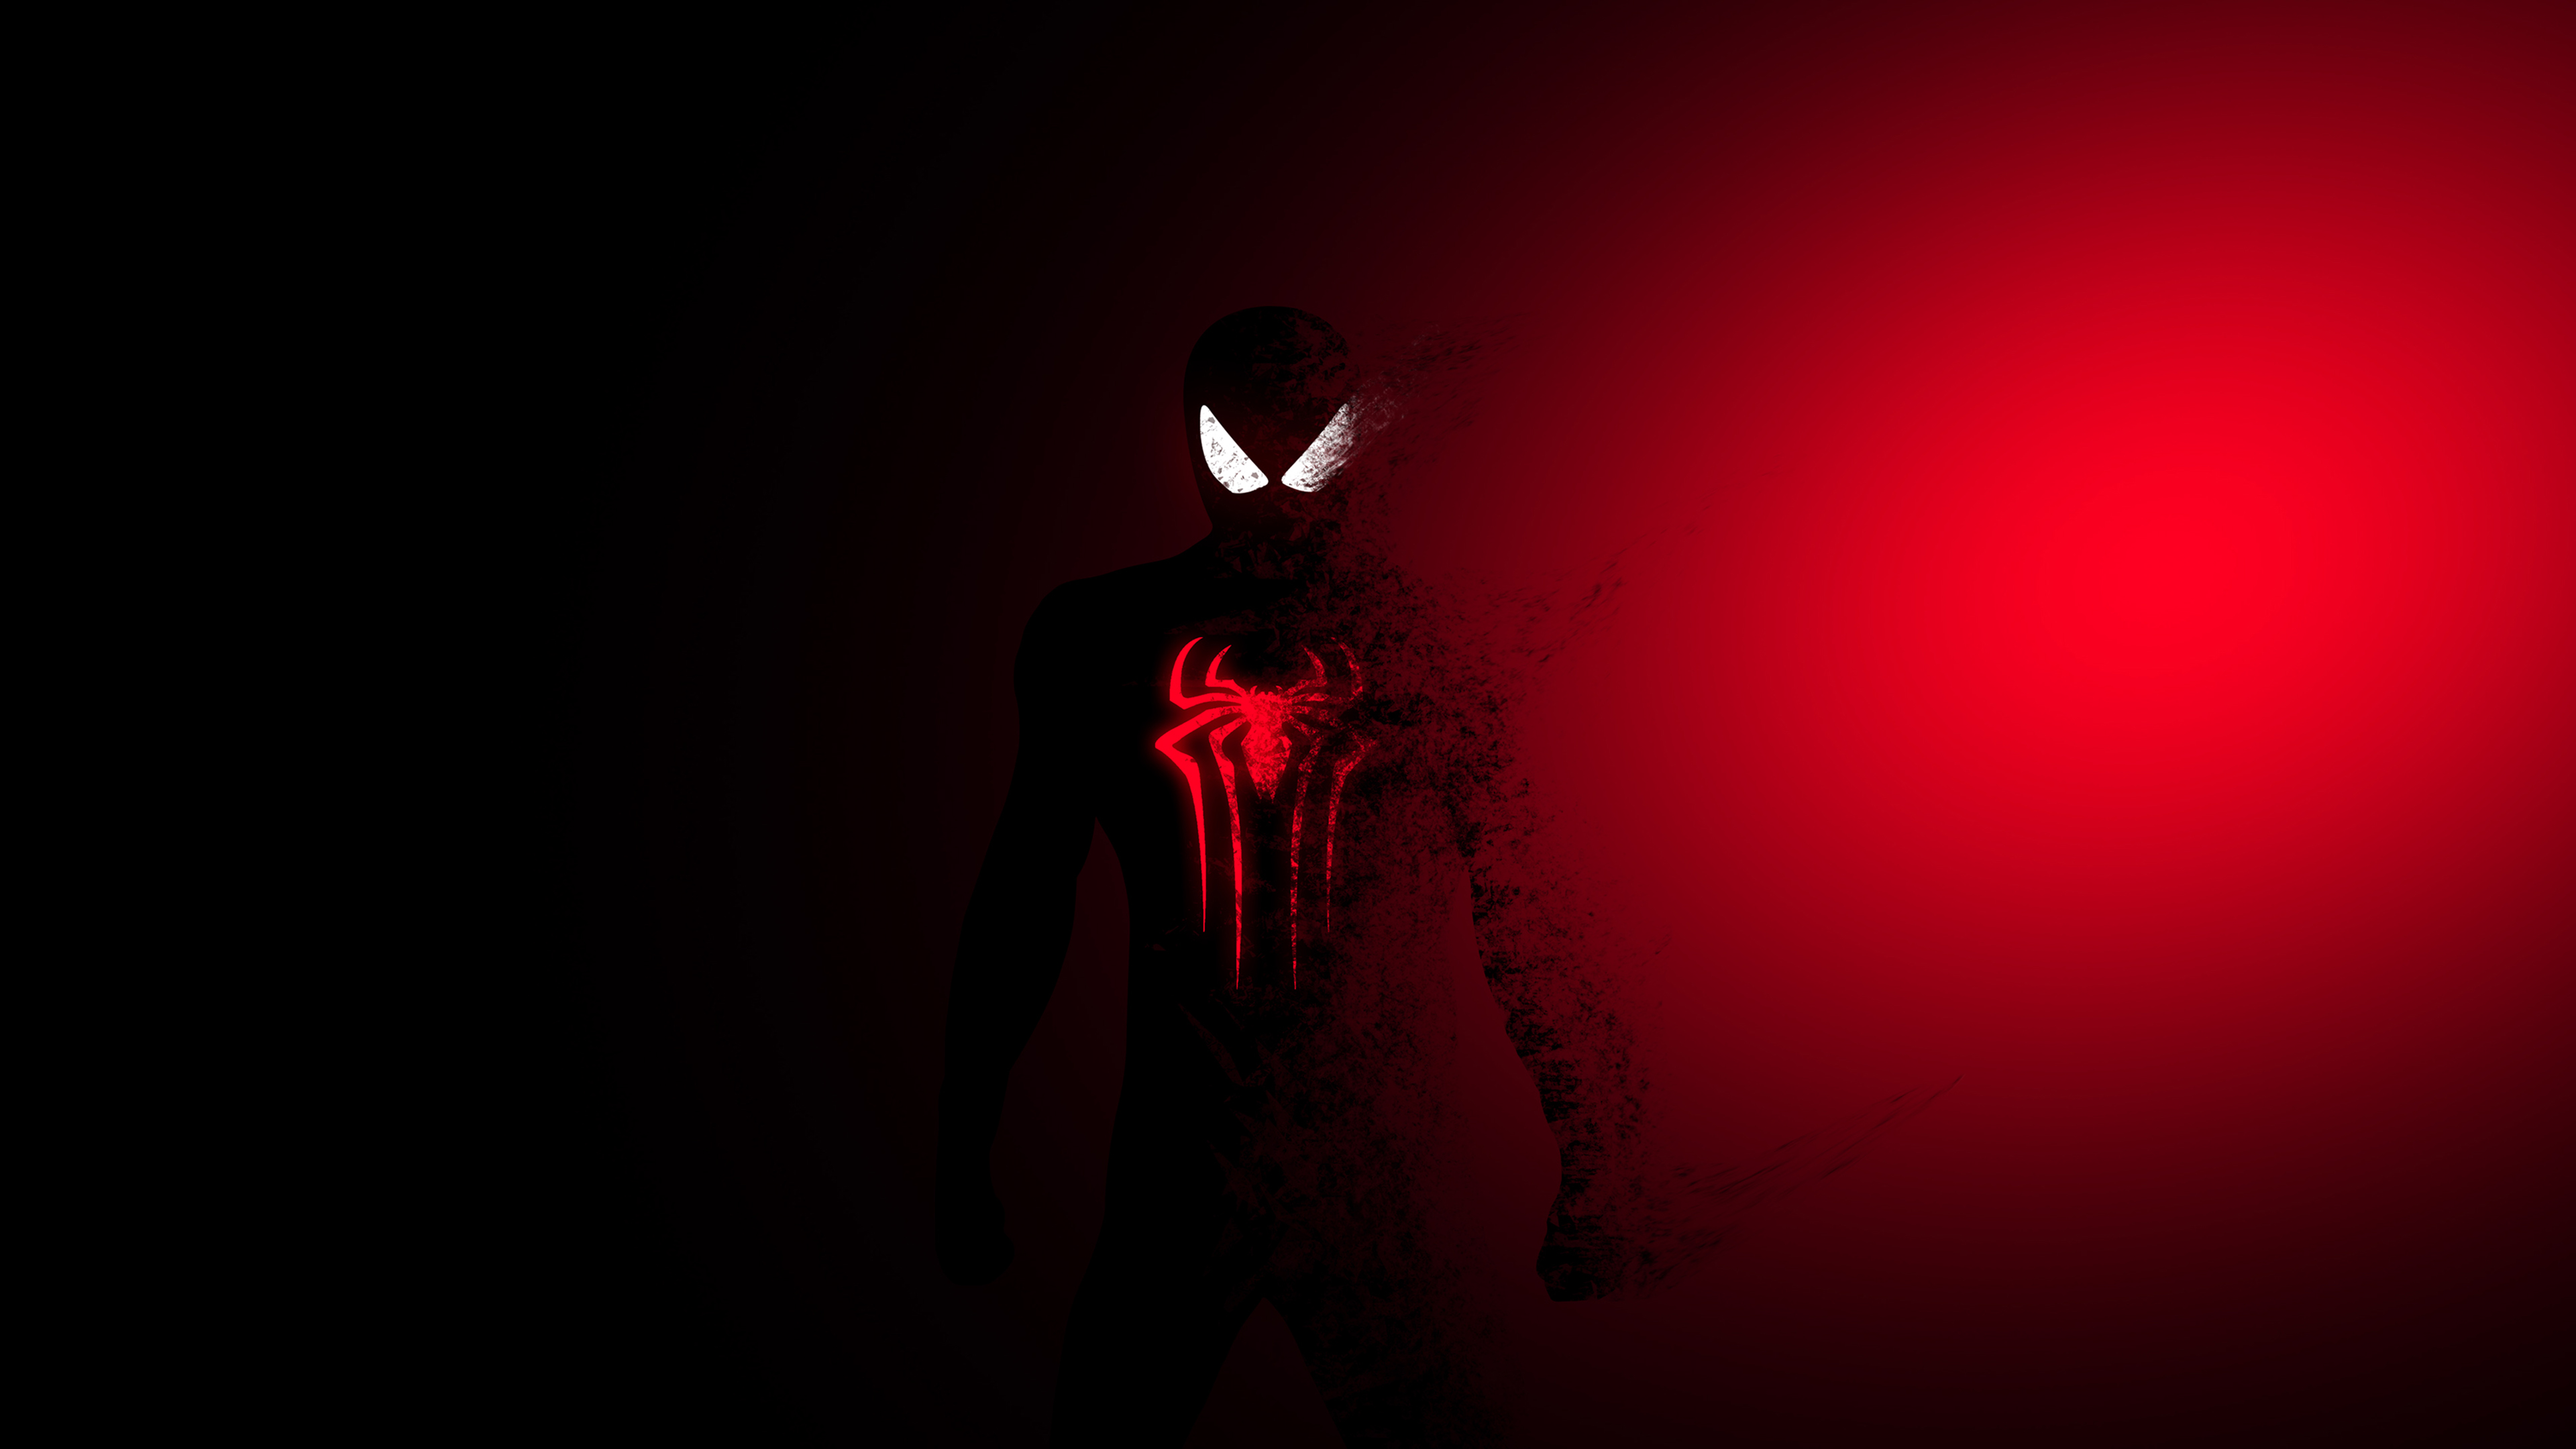 Minimalist Marvel Wallpaper Posted By Sarah Cunningham